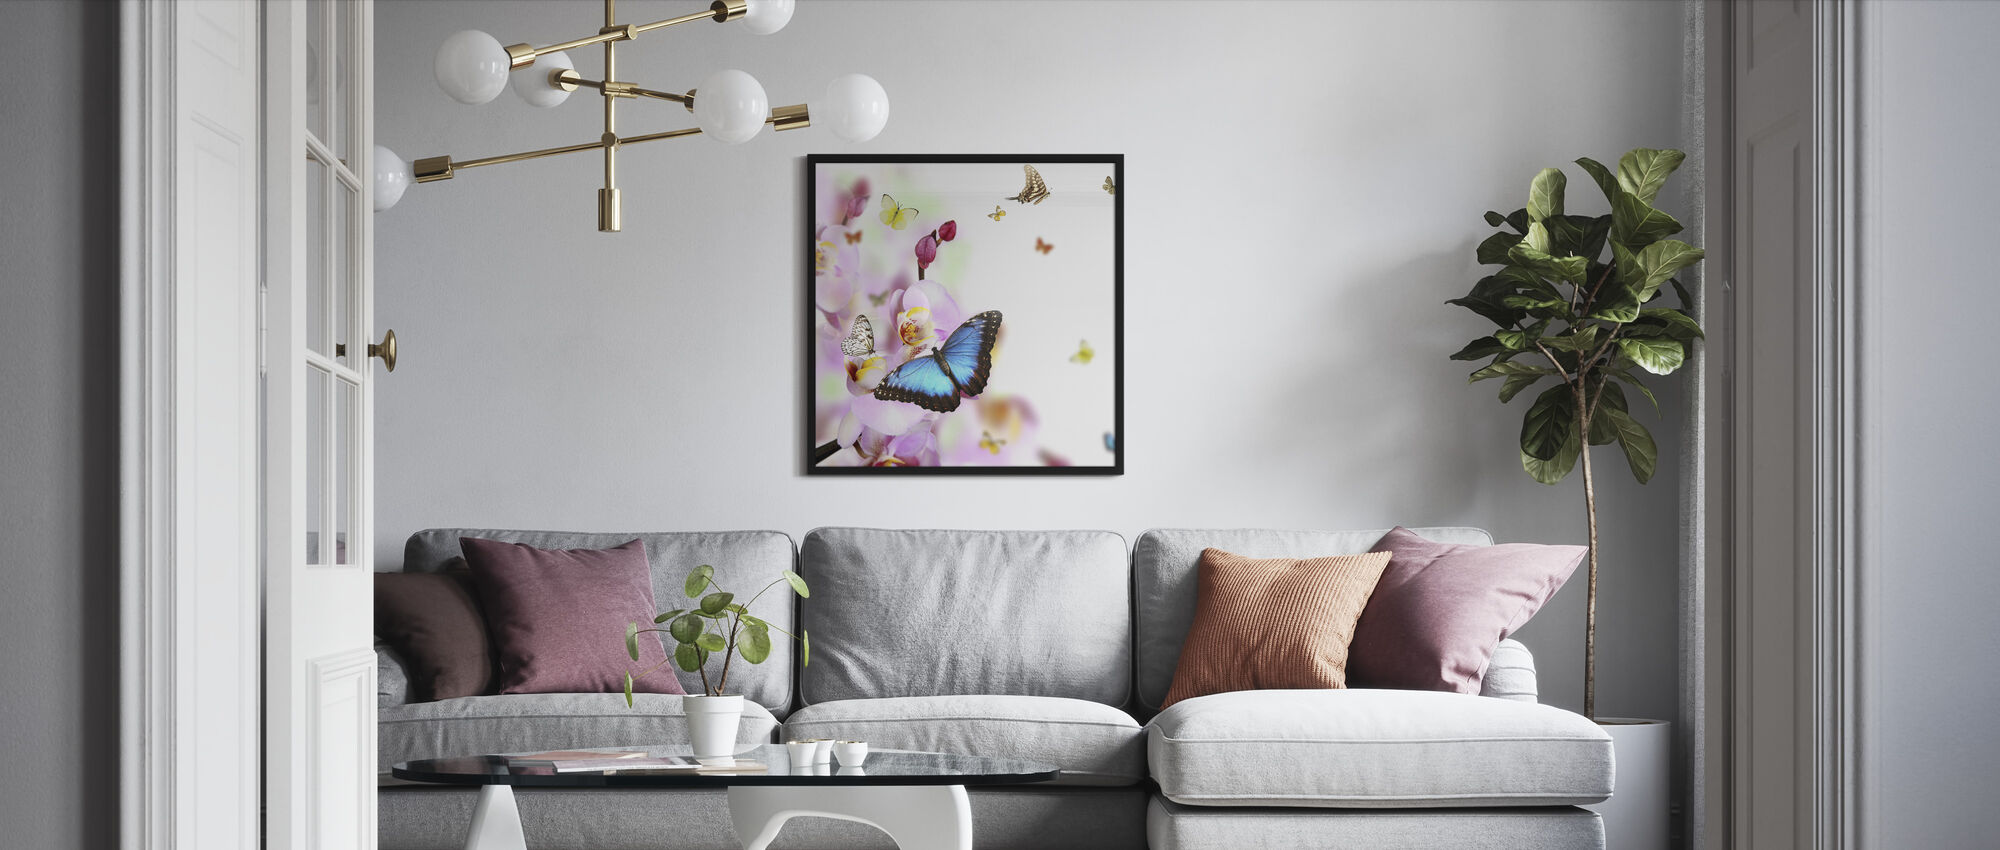 Butterflies and Orchid Blossoms - Framed print - Living Room